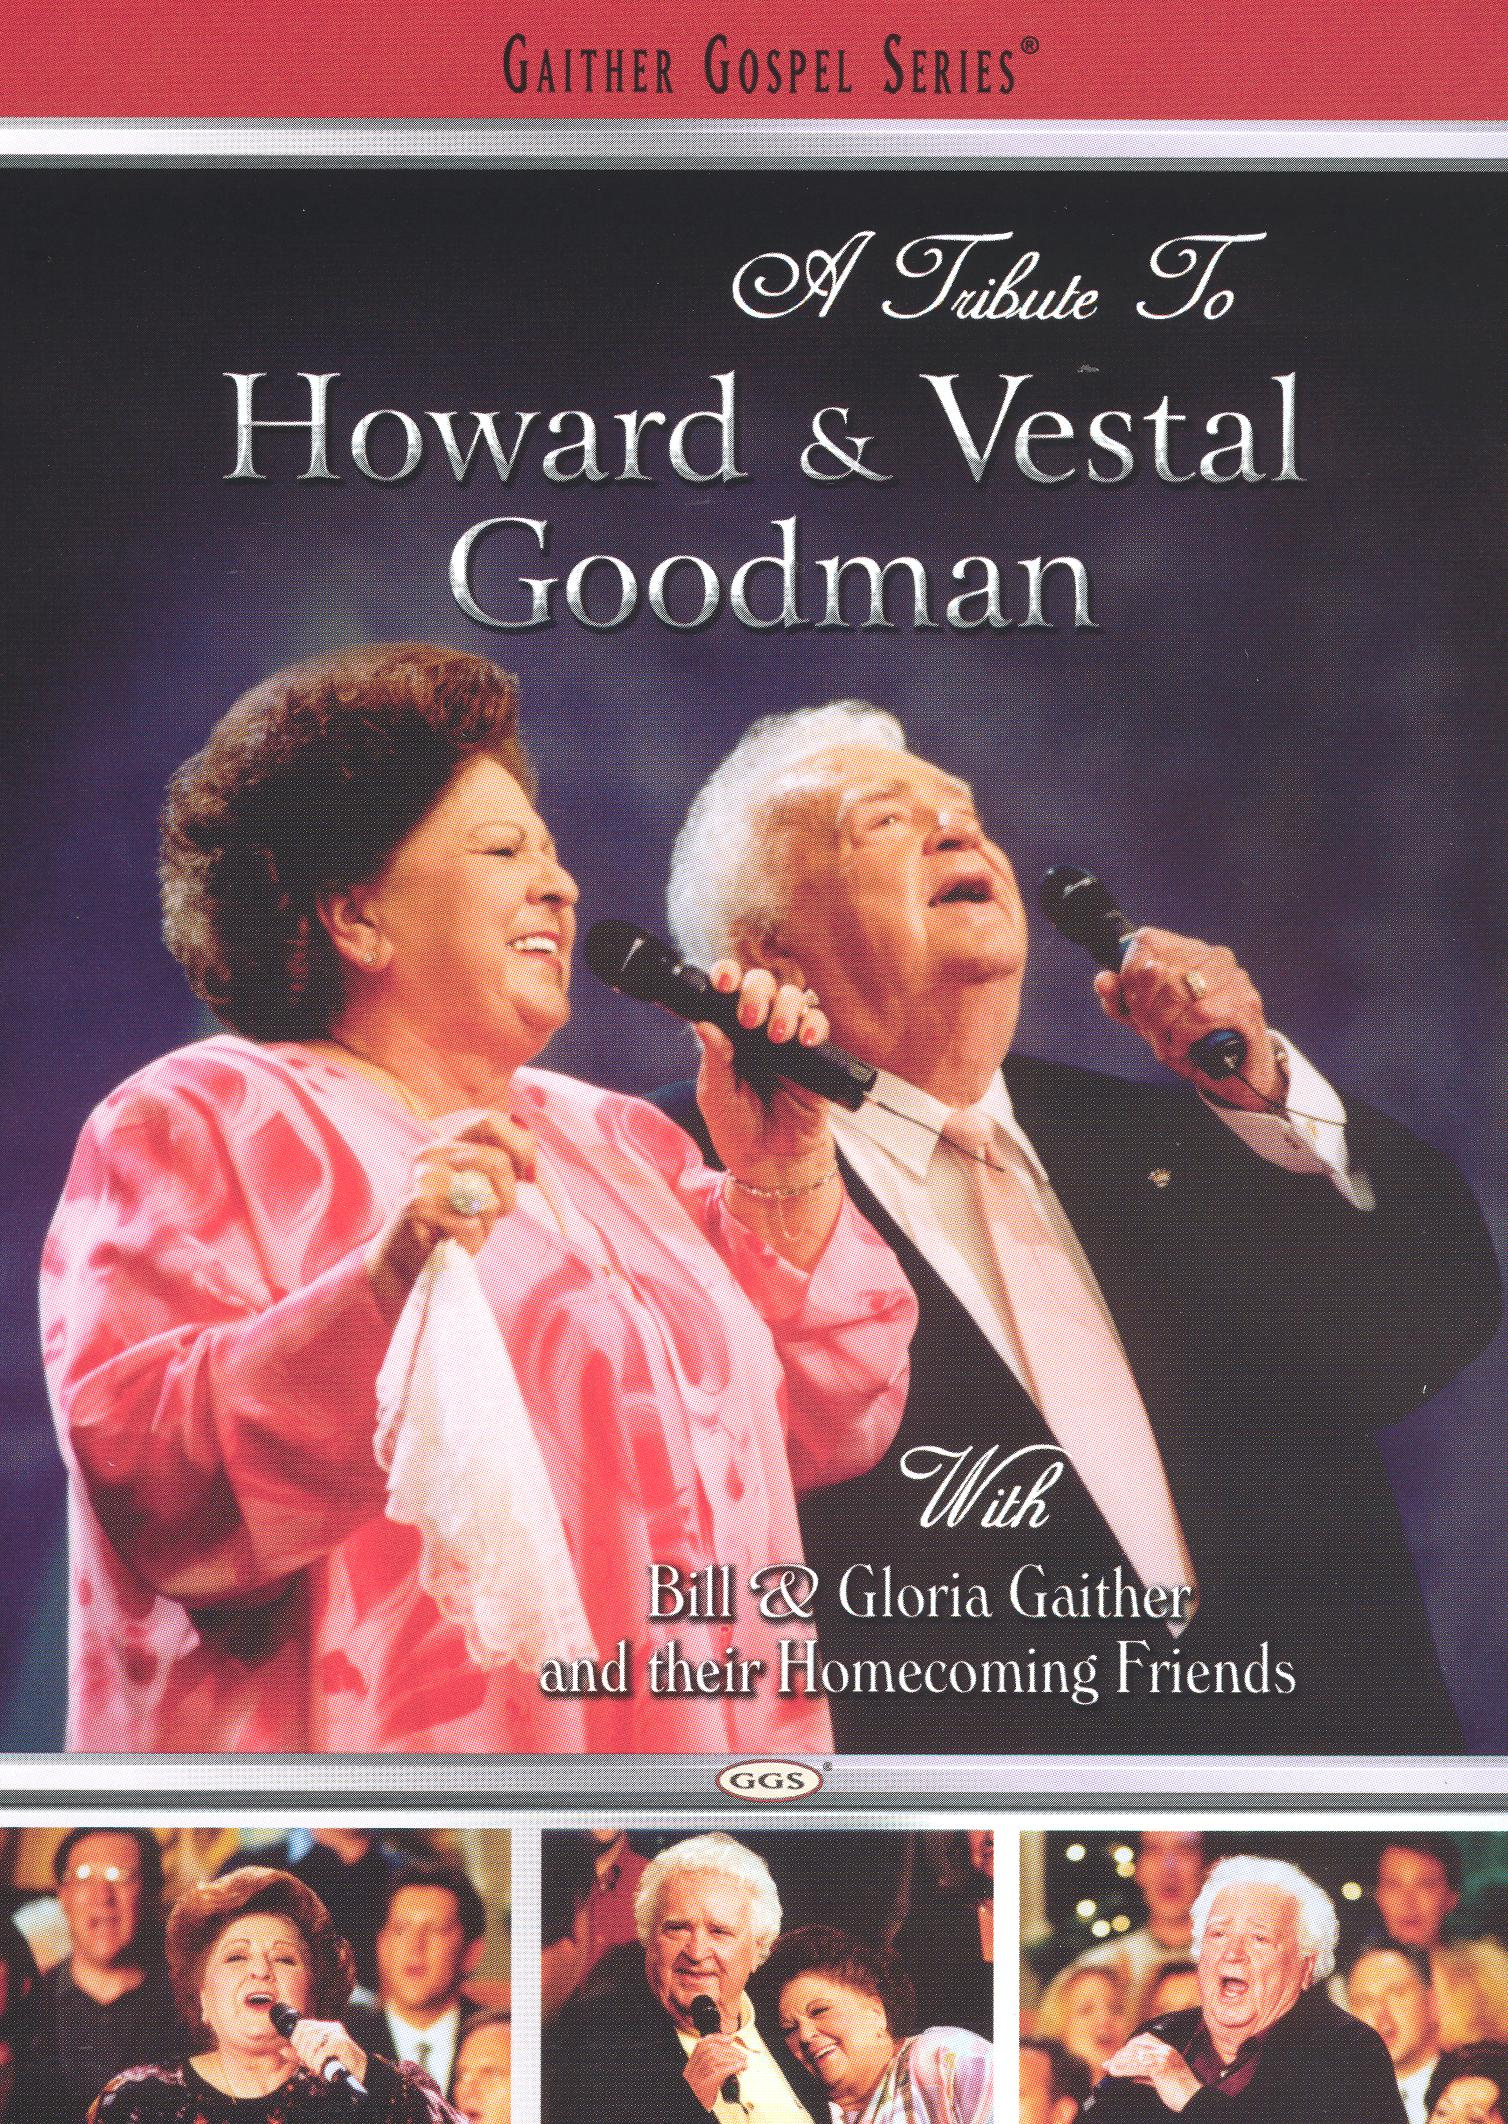 A Tribute to Howard and Vestal Goodman with Bill & Gloria Gaither and Their Homecoming Friends